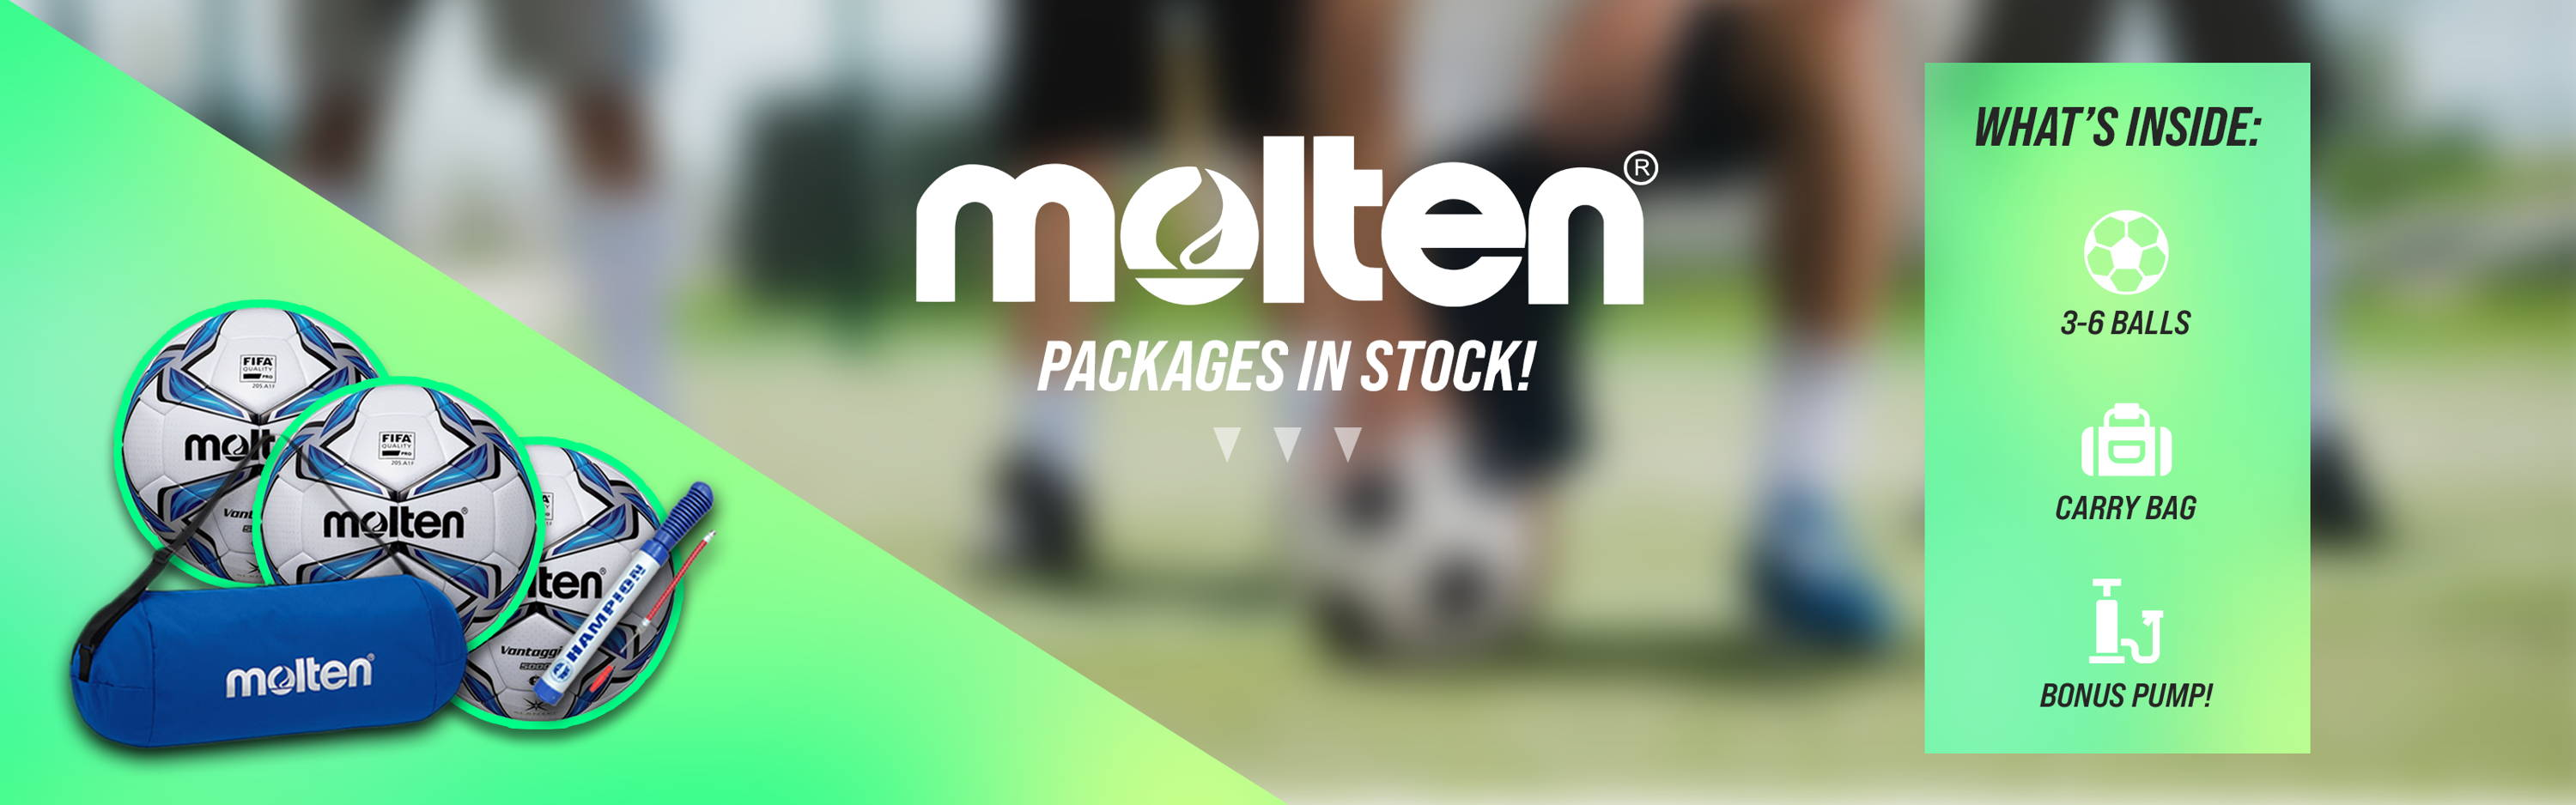 Molten - Packages in Stock